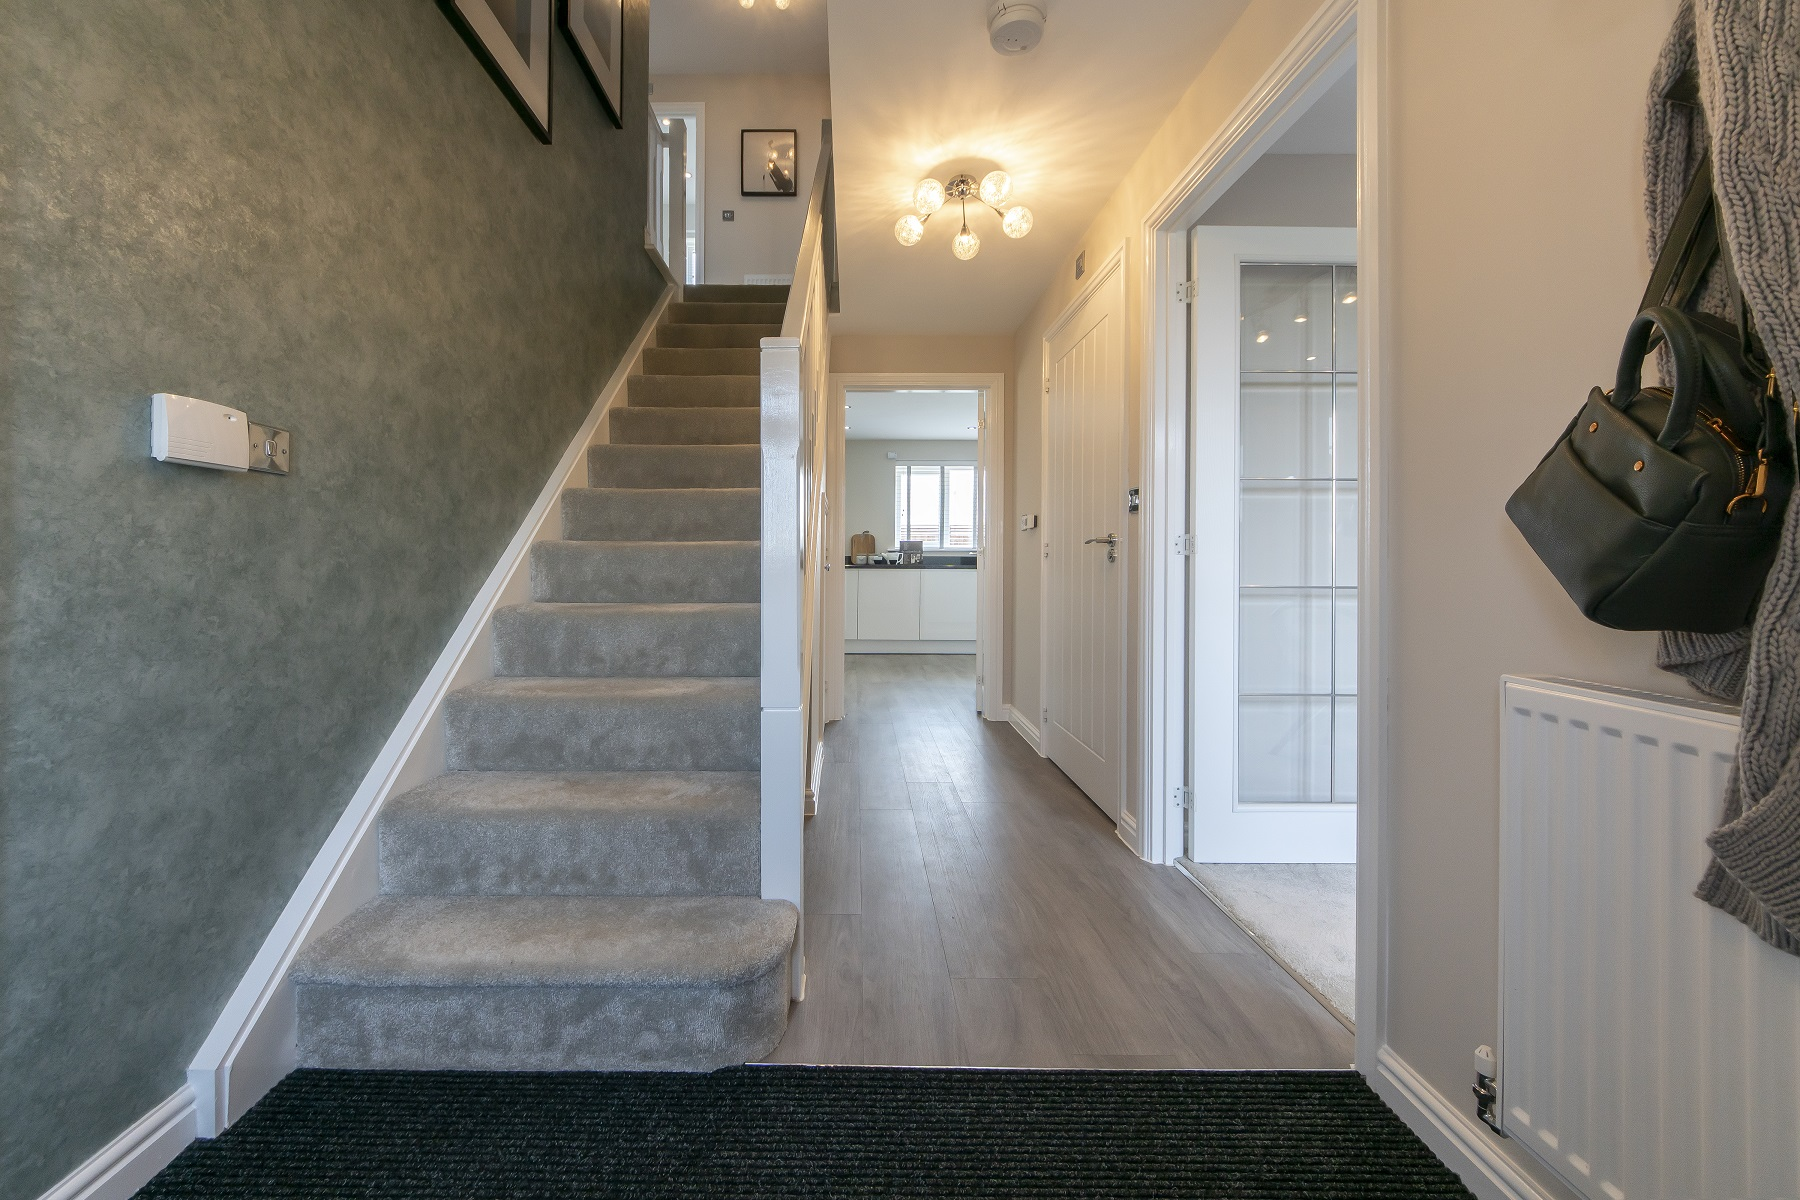 Hallway Shelford-4bedroom-showhome_03